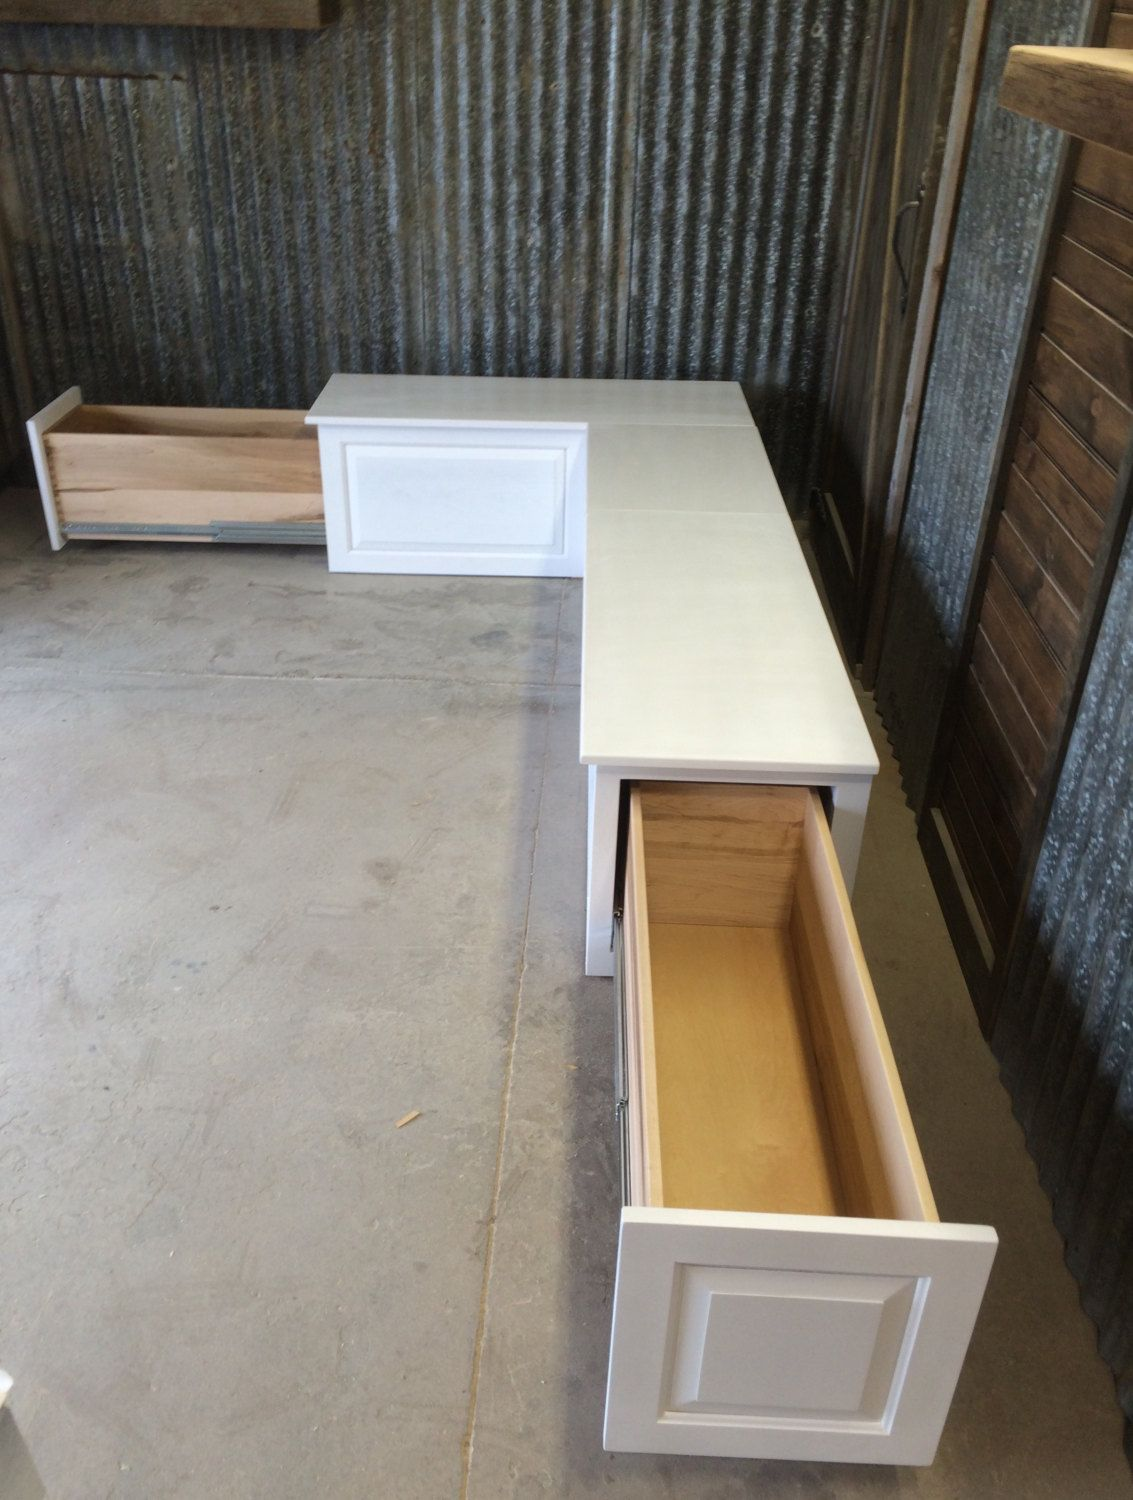 Banquette Corner Bench Seat With Storage Drawers Nook